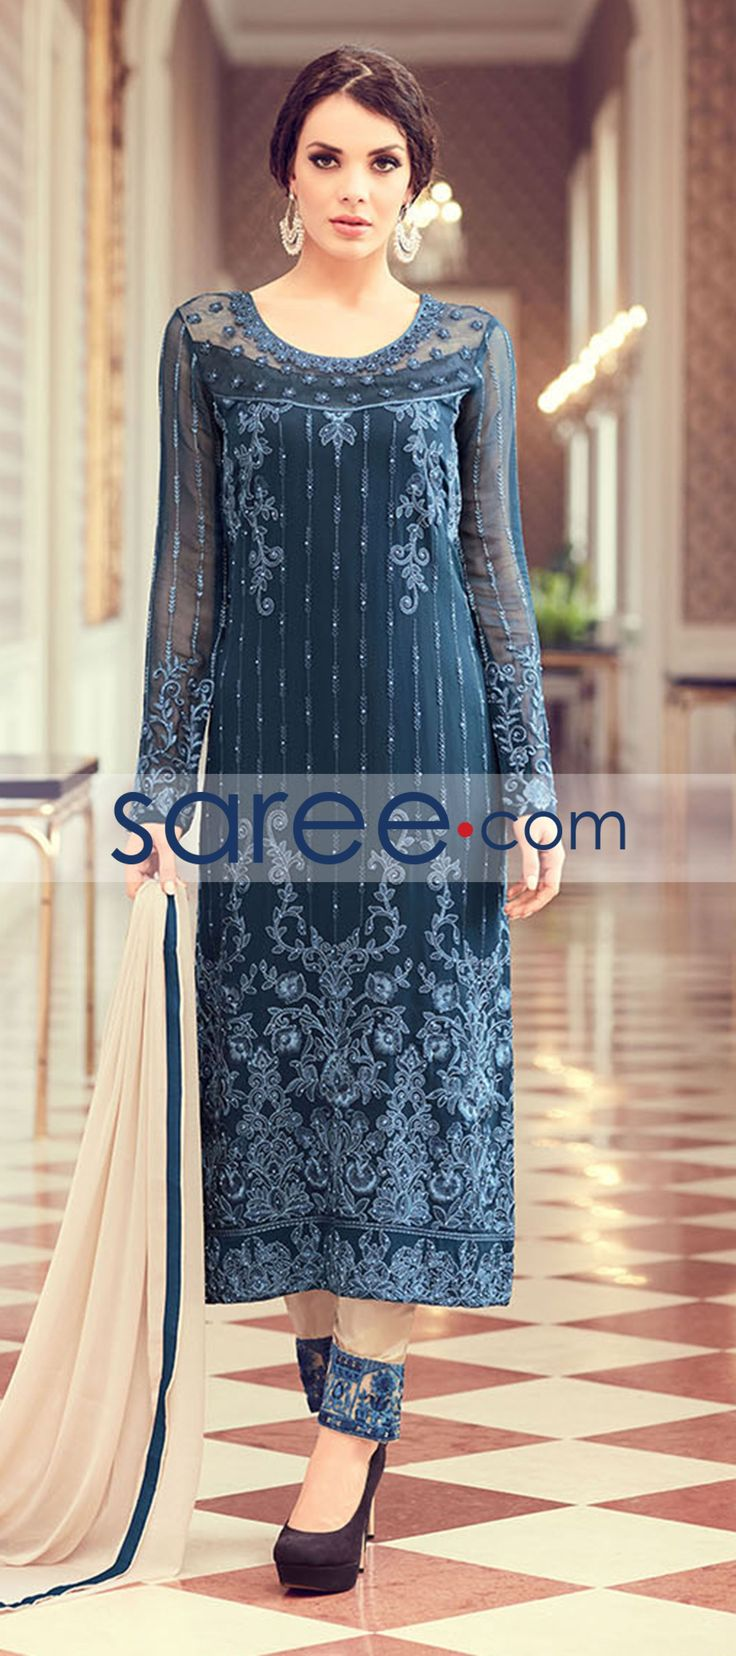 BLUE GEORGETTE SUIT WITH EMBROIDERY WORK #SalwarSuit #SalwarKameez #AnarkaliSuits #StraightCutSuits #CollegeWearSalwarSuits #buyonline #OnlineSalwarSuits #PartywearSalwarSuits #SalwarSuits #Indowestern